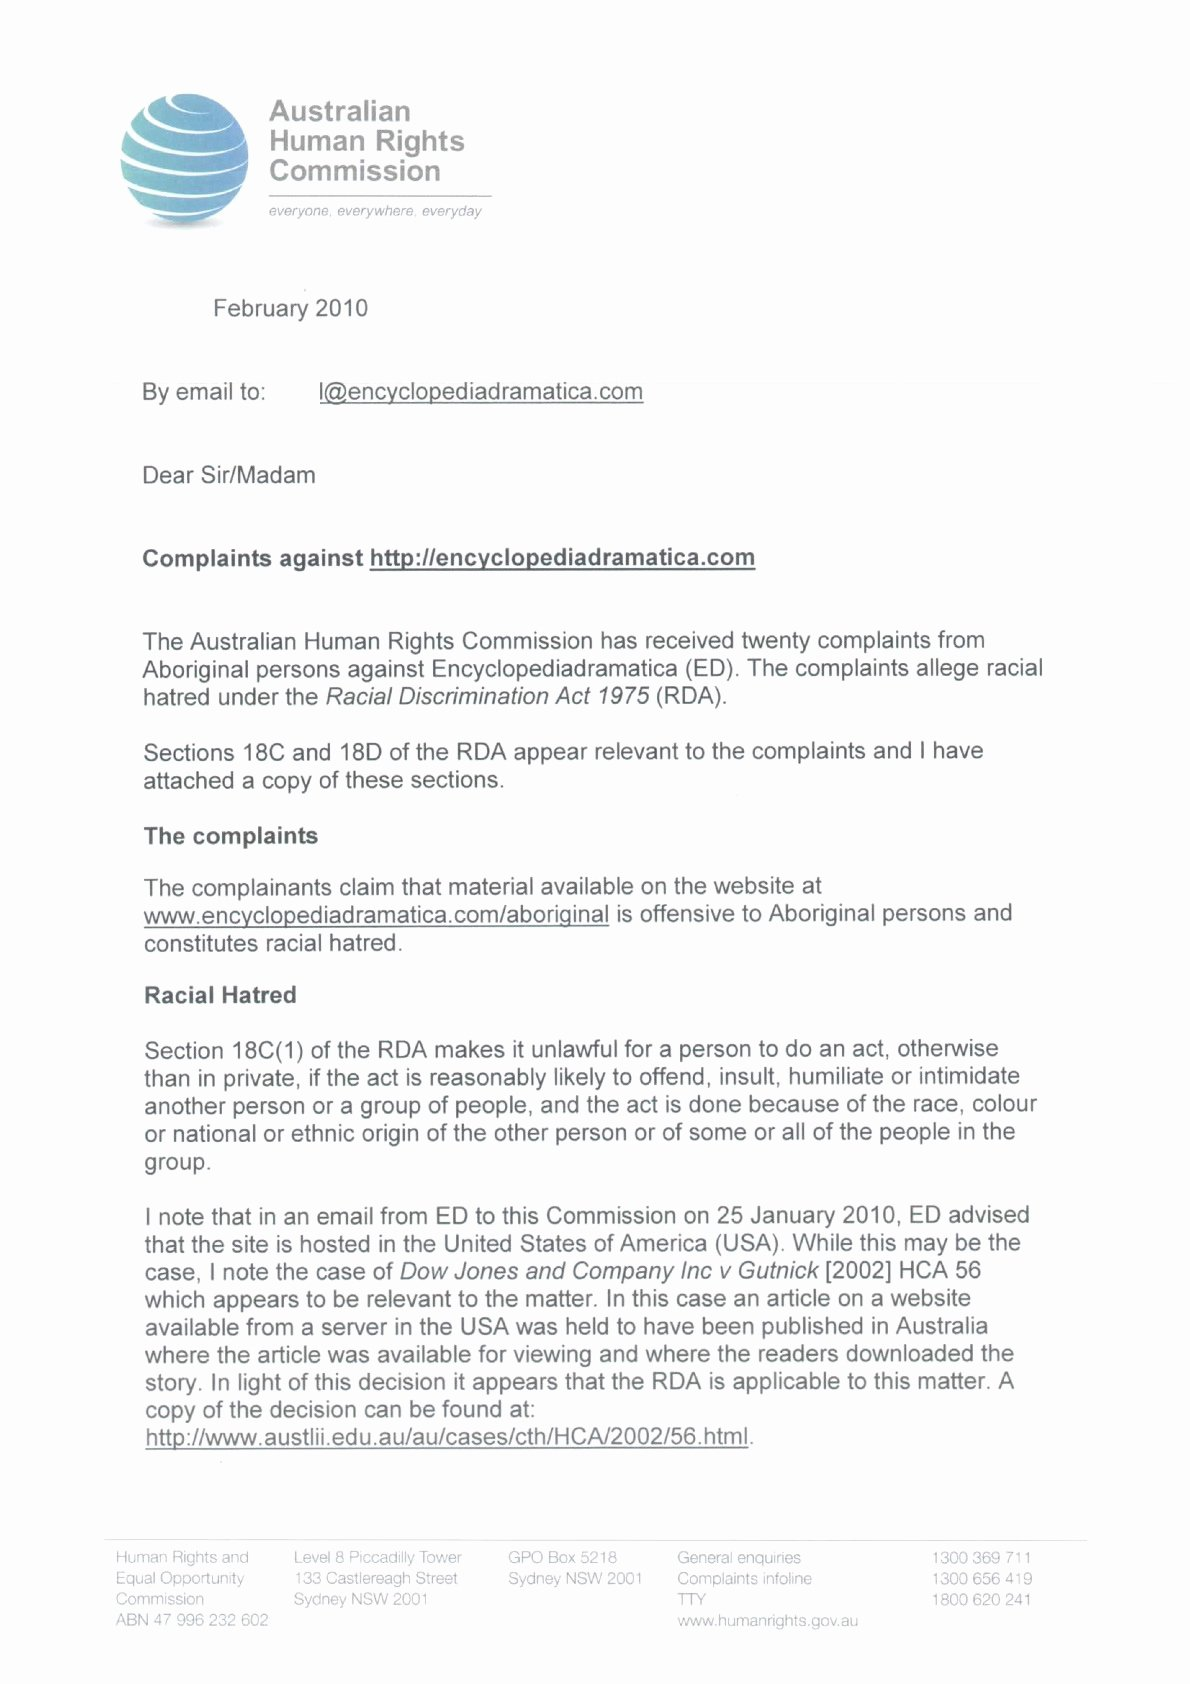 Sample Discrimination Complaint Letter Best Of Australia Human Rights Mission Threatens Joseph Evers